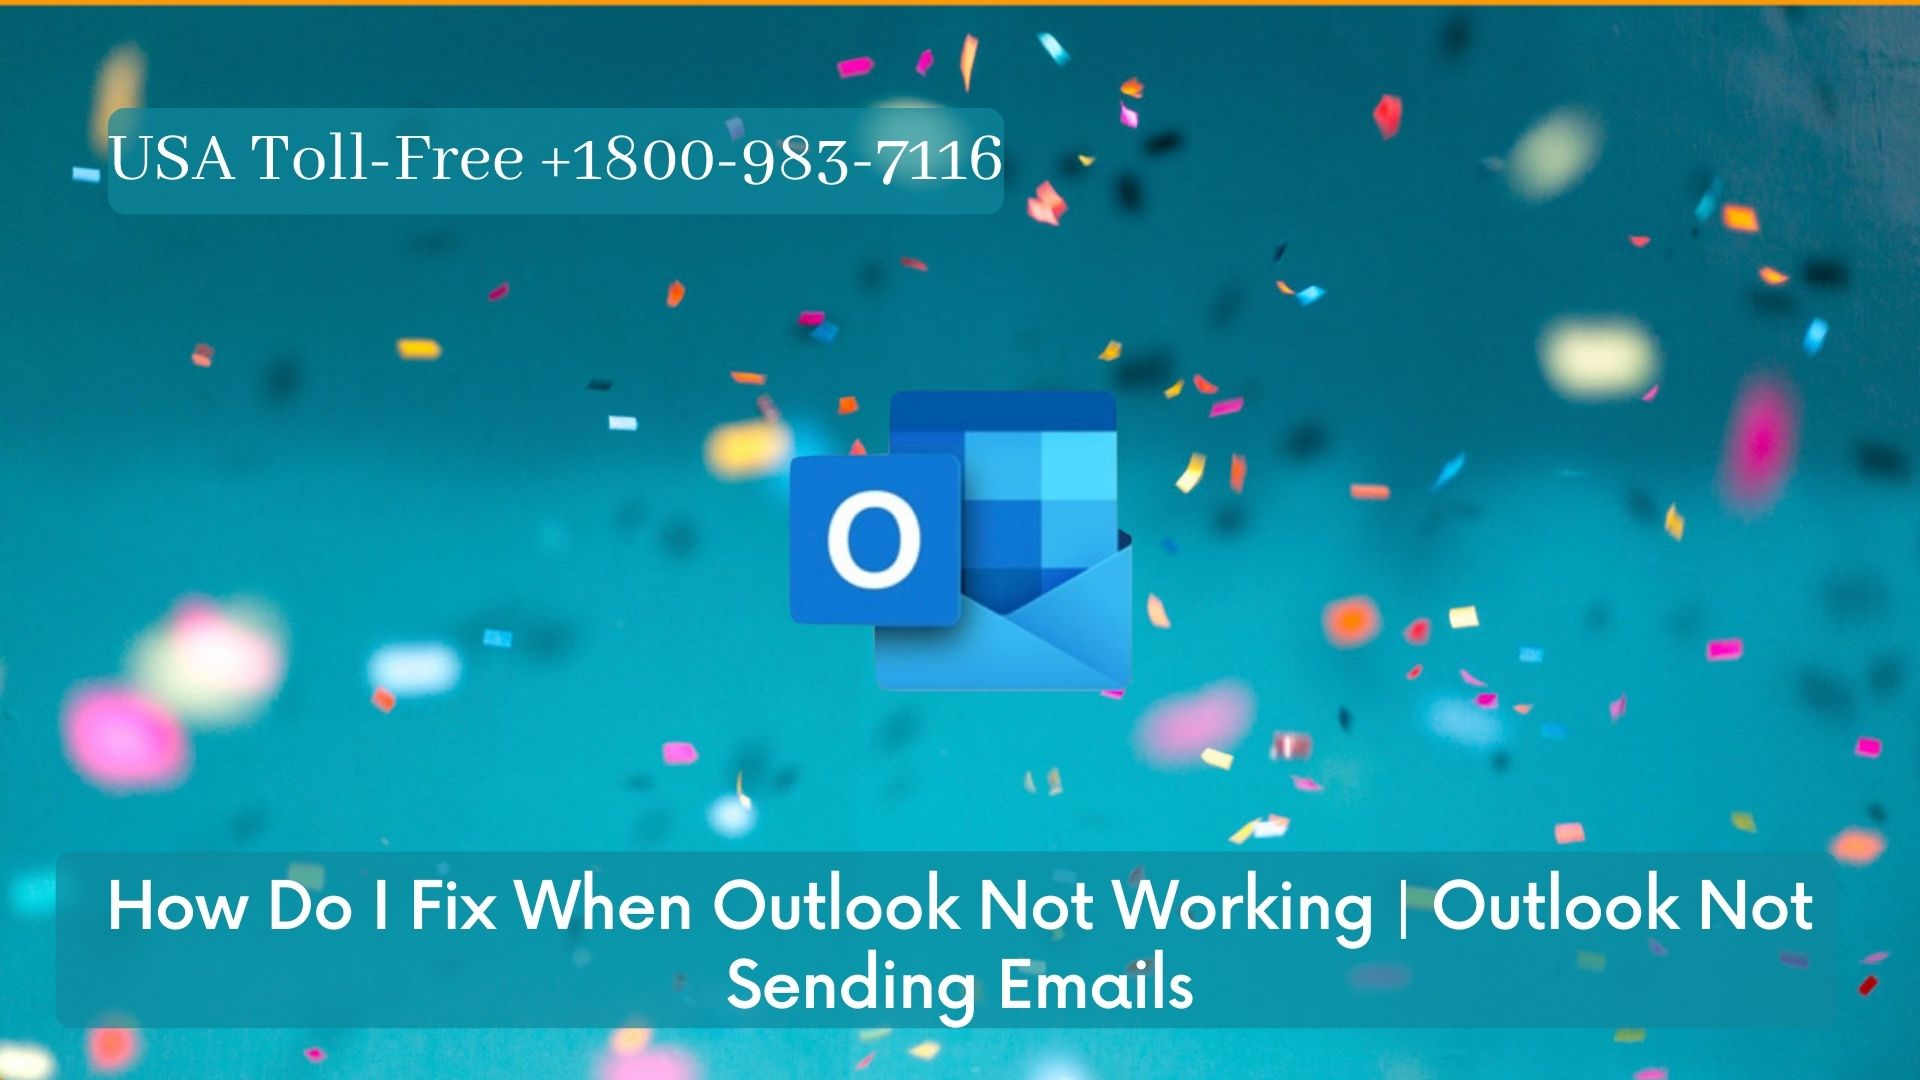 Steps for Outlook Not Working | Here are the steps